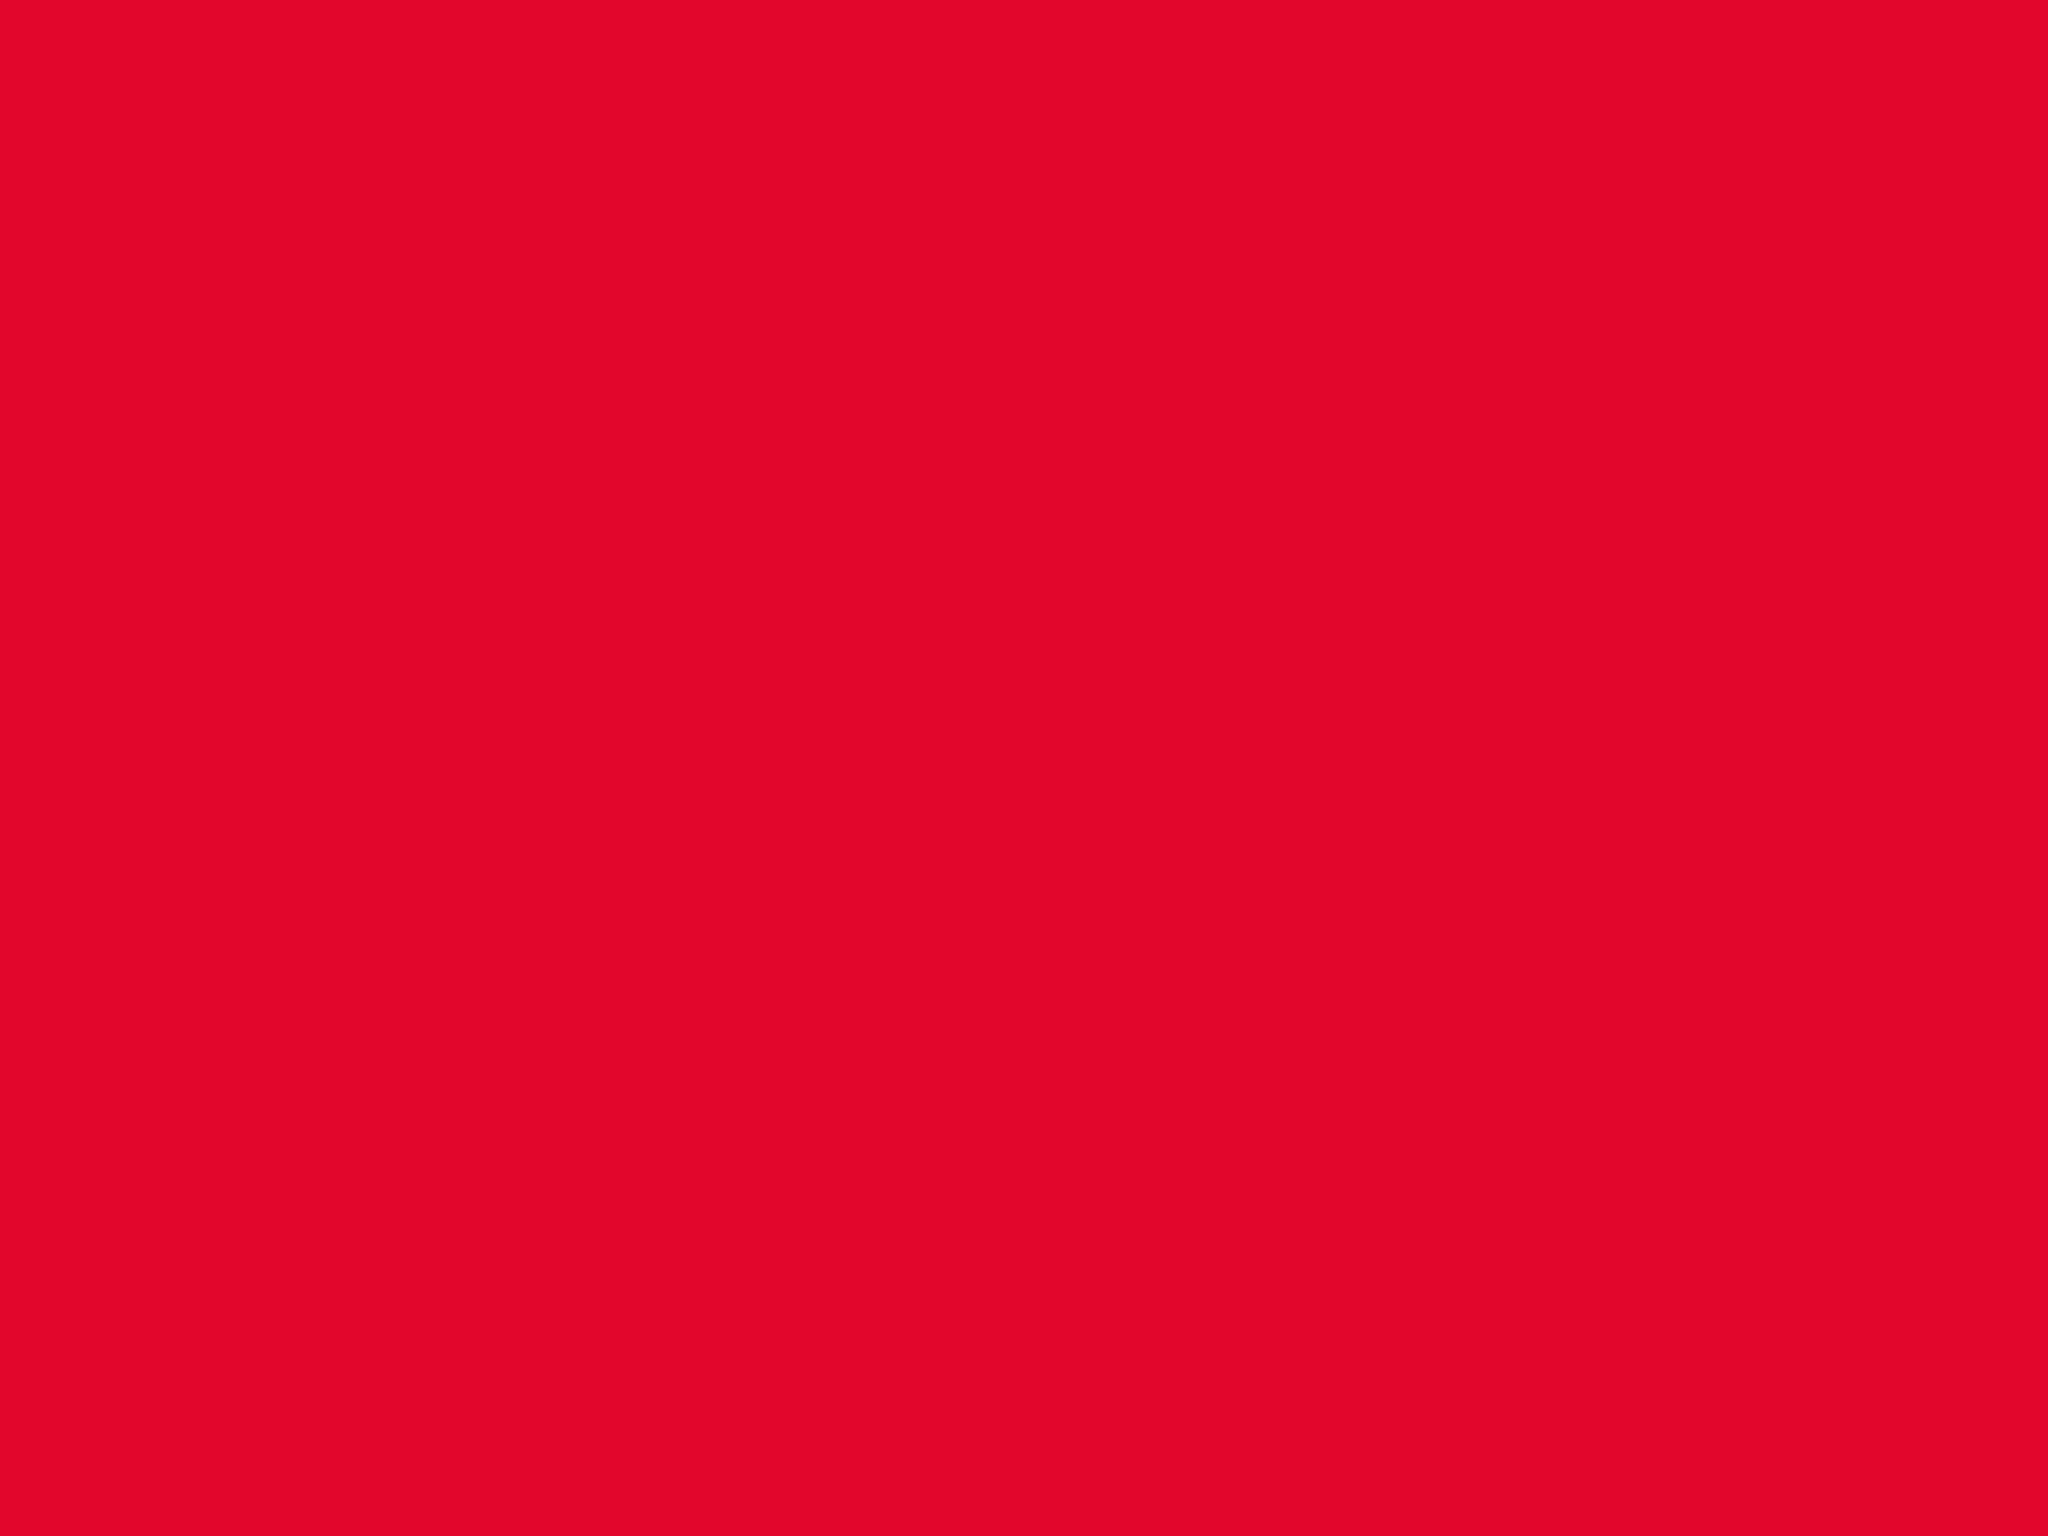 2048x1536 Medium Candy Apple Red Solid Color Background